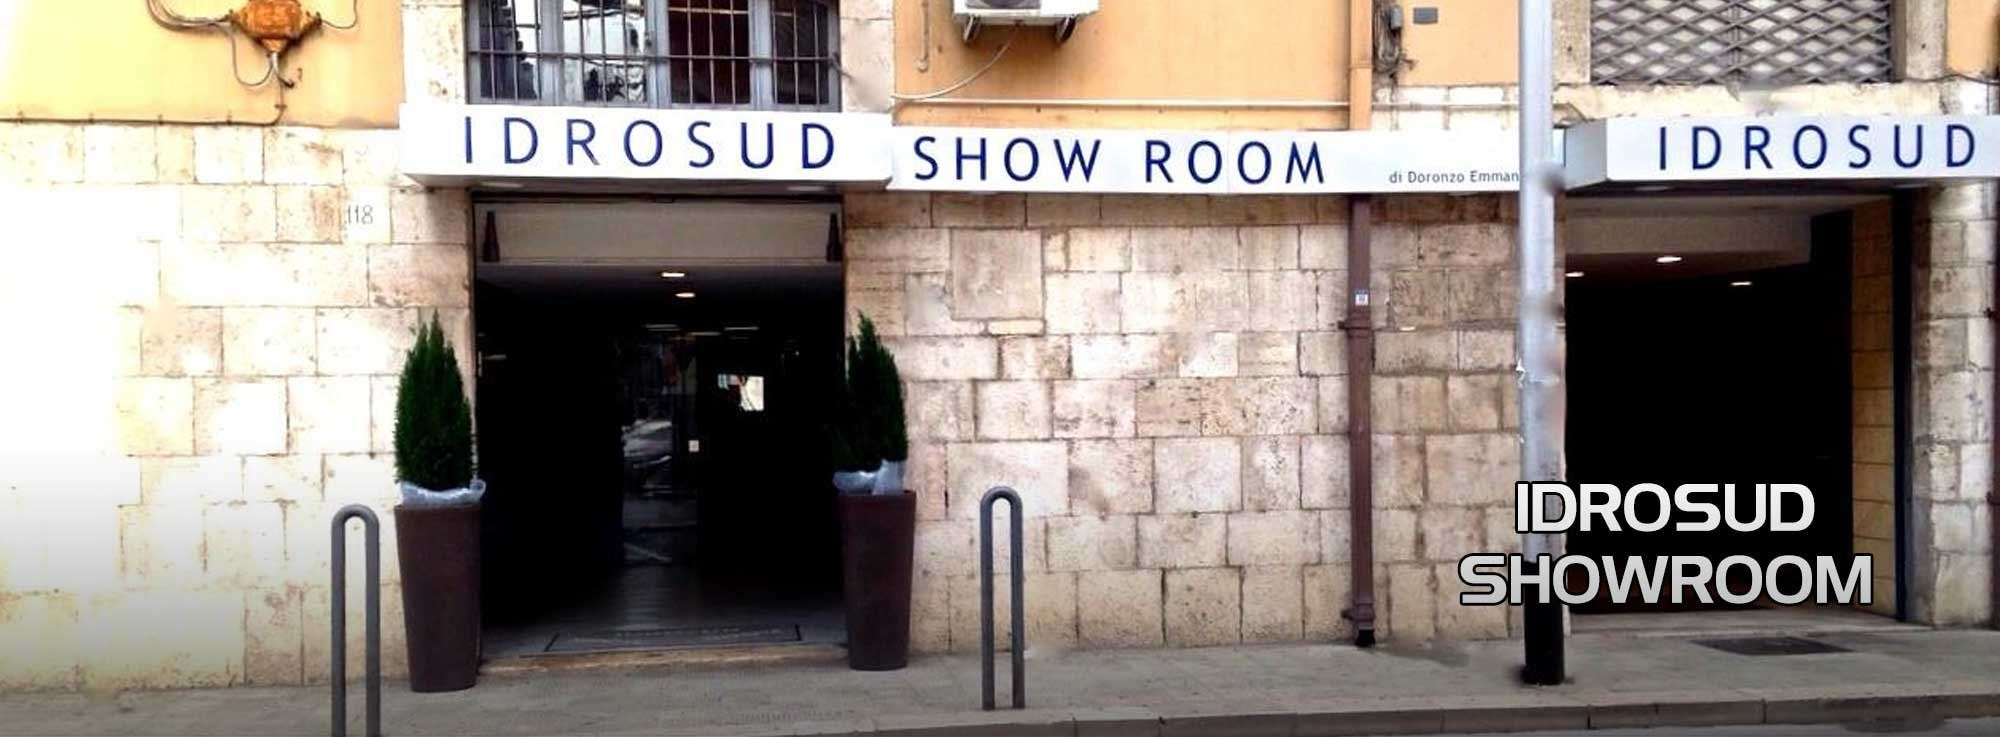 Idrosud Showroom Barletta